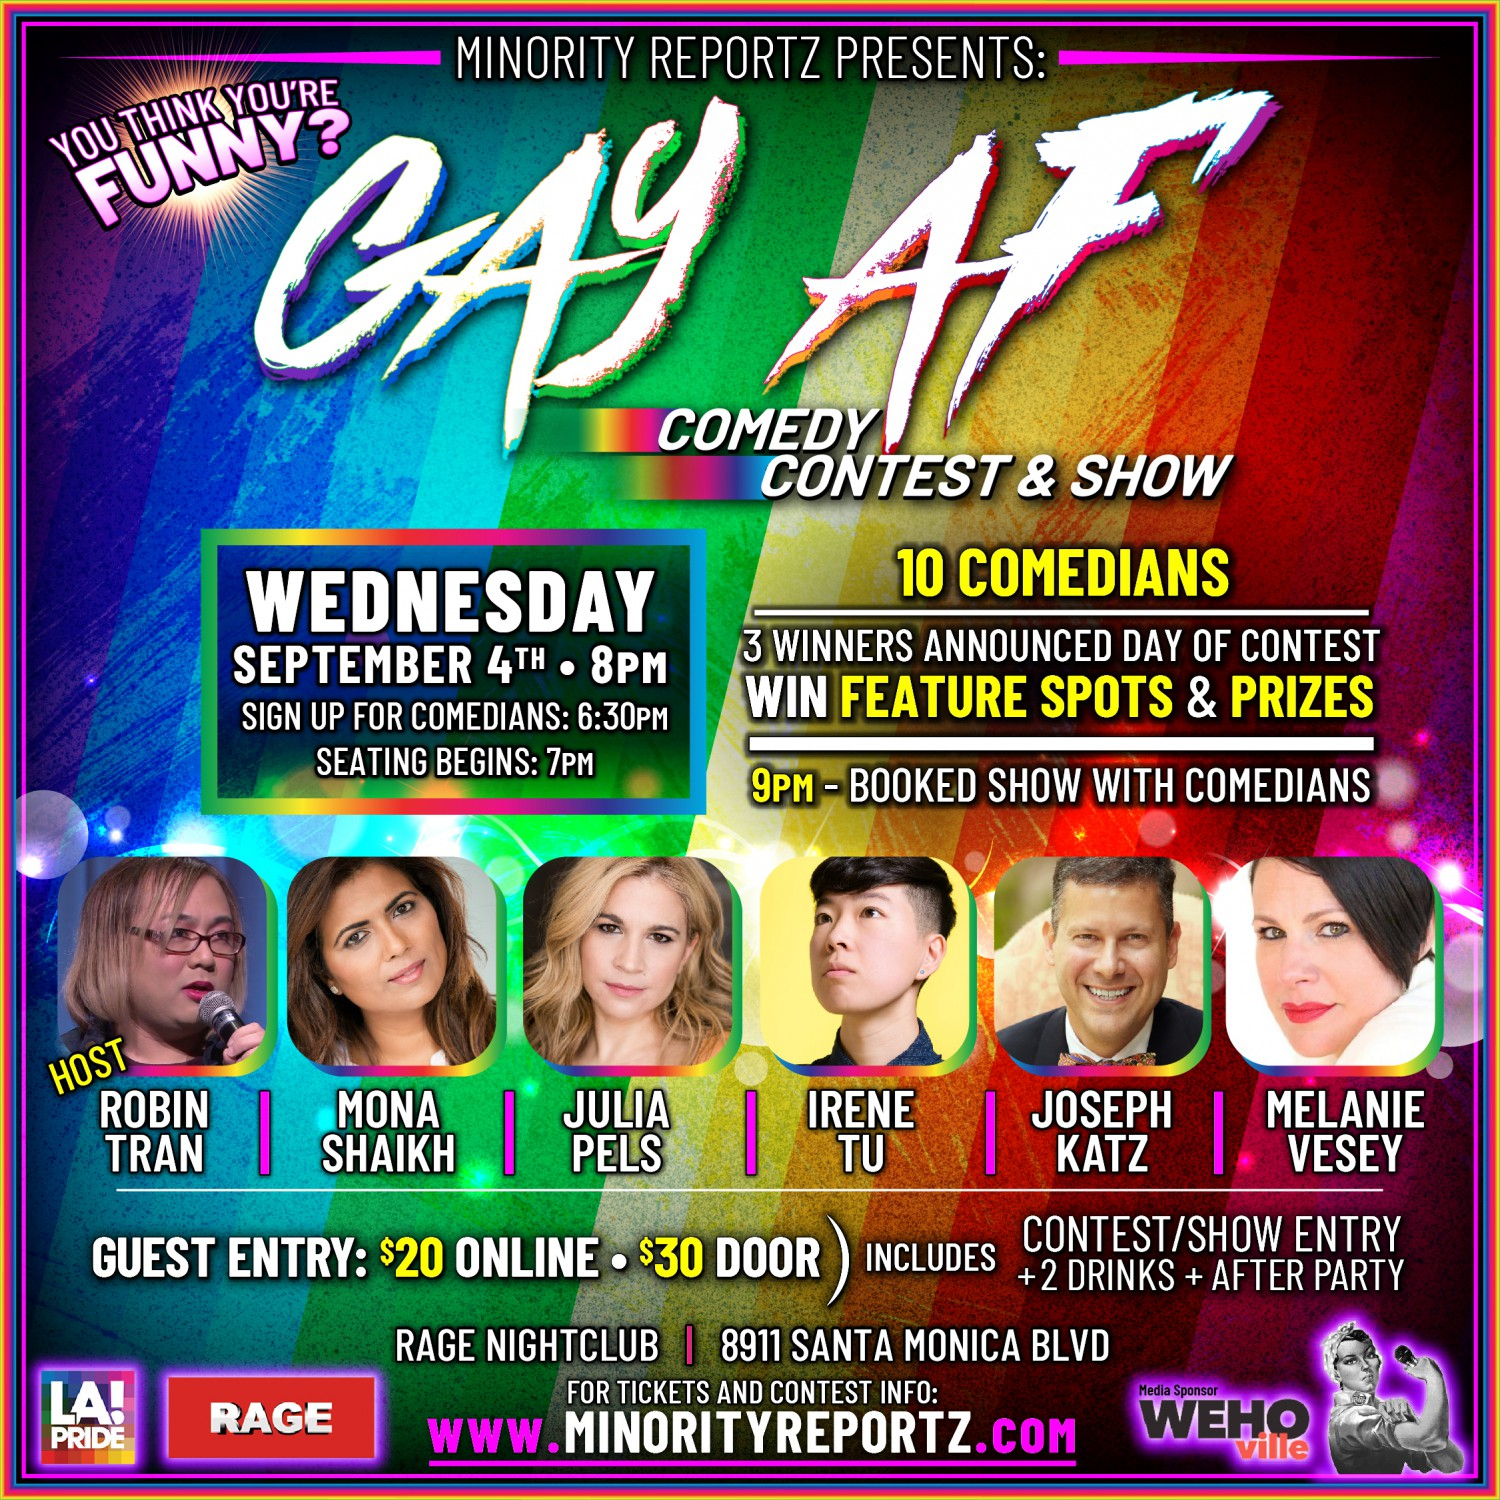 MINORITY REPORTZ PRESENTS GAY AF COMEDY SHOW WITH HOST ROBIN TRAN (Comedy Store), JOSEPH KATZ (Good Morning America), MELANIE VESEY (Flappers Comedy Club), MONA SHAIKH (Producer of Minority Reportz) + DJ/DANCING AFTER PARTY INCLUDED IN TICKET PRICE!